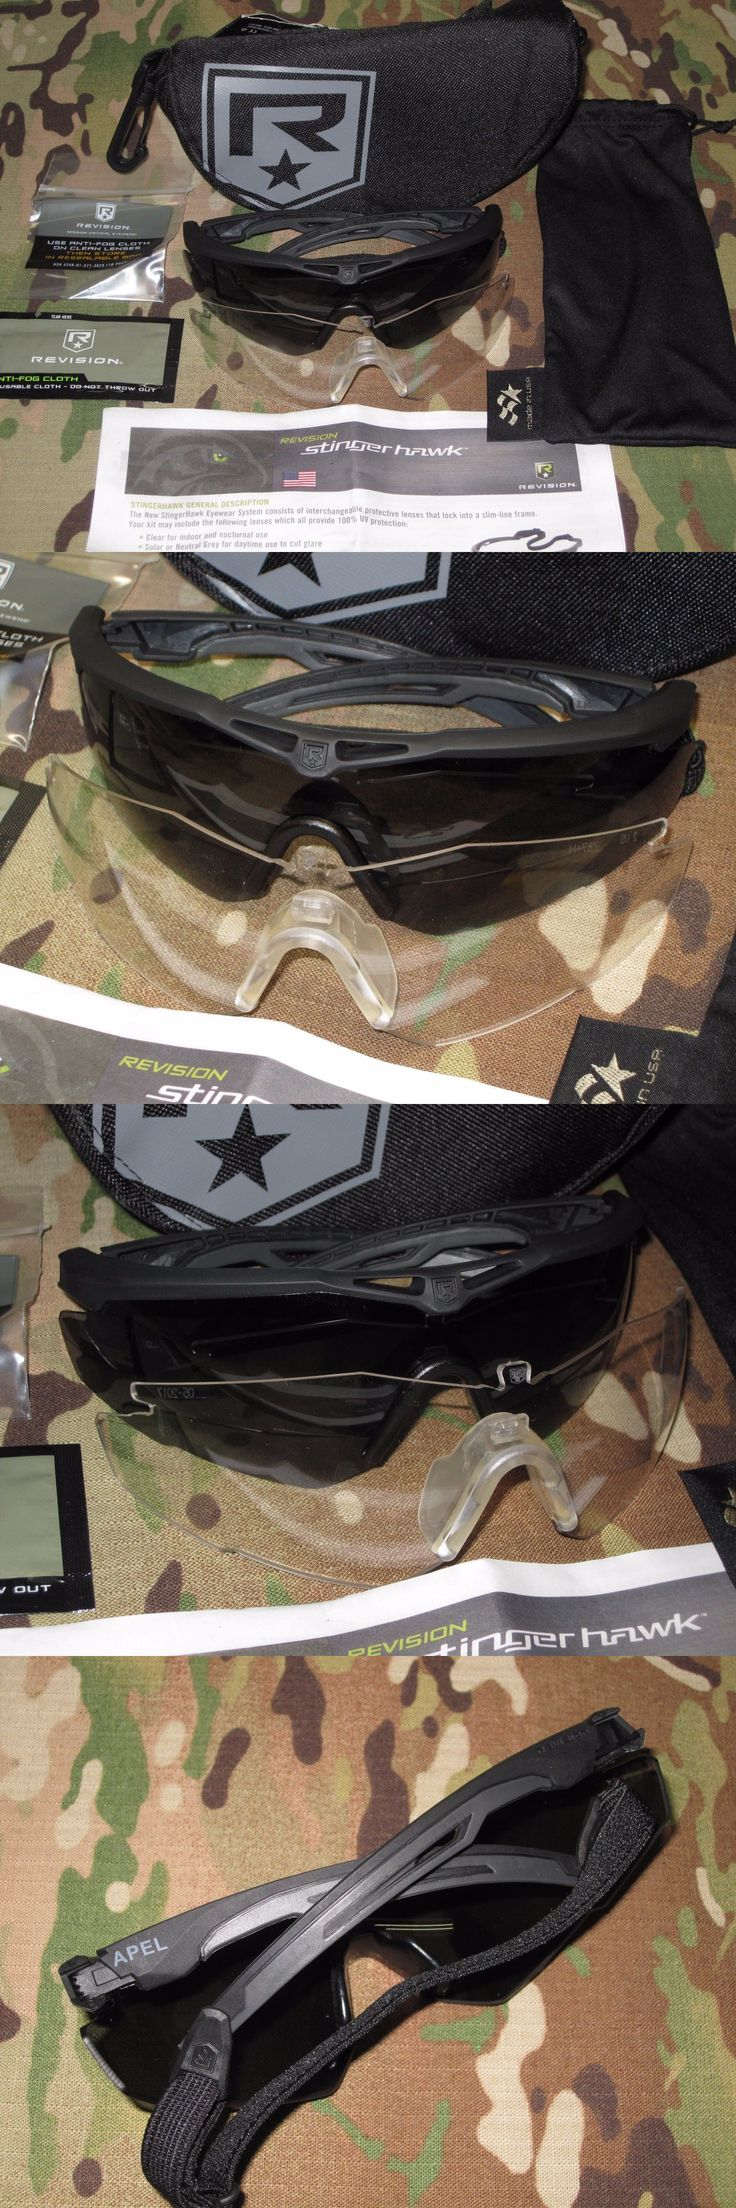 Shooting and Safety Glasses 151549: Revision Military Eye Pro Kit Stingerhawk Clear And Dark Lens Shatterproof Glasses -> BUY IT NOW ONLY: $54.95 on eBay!